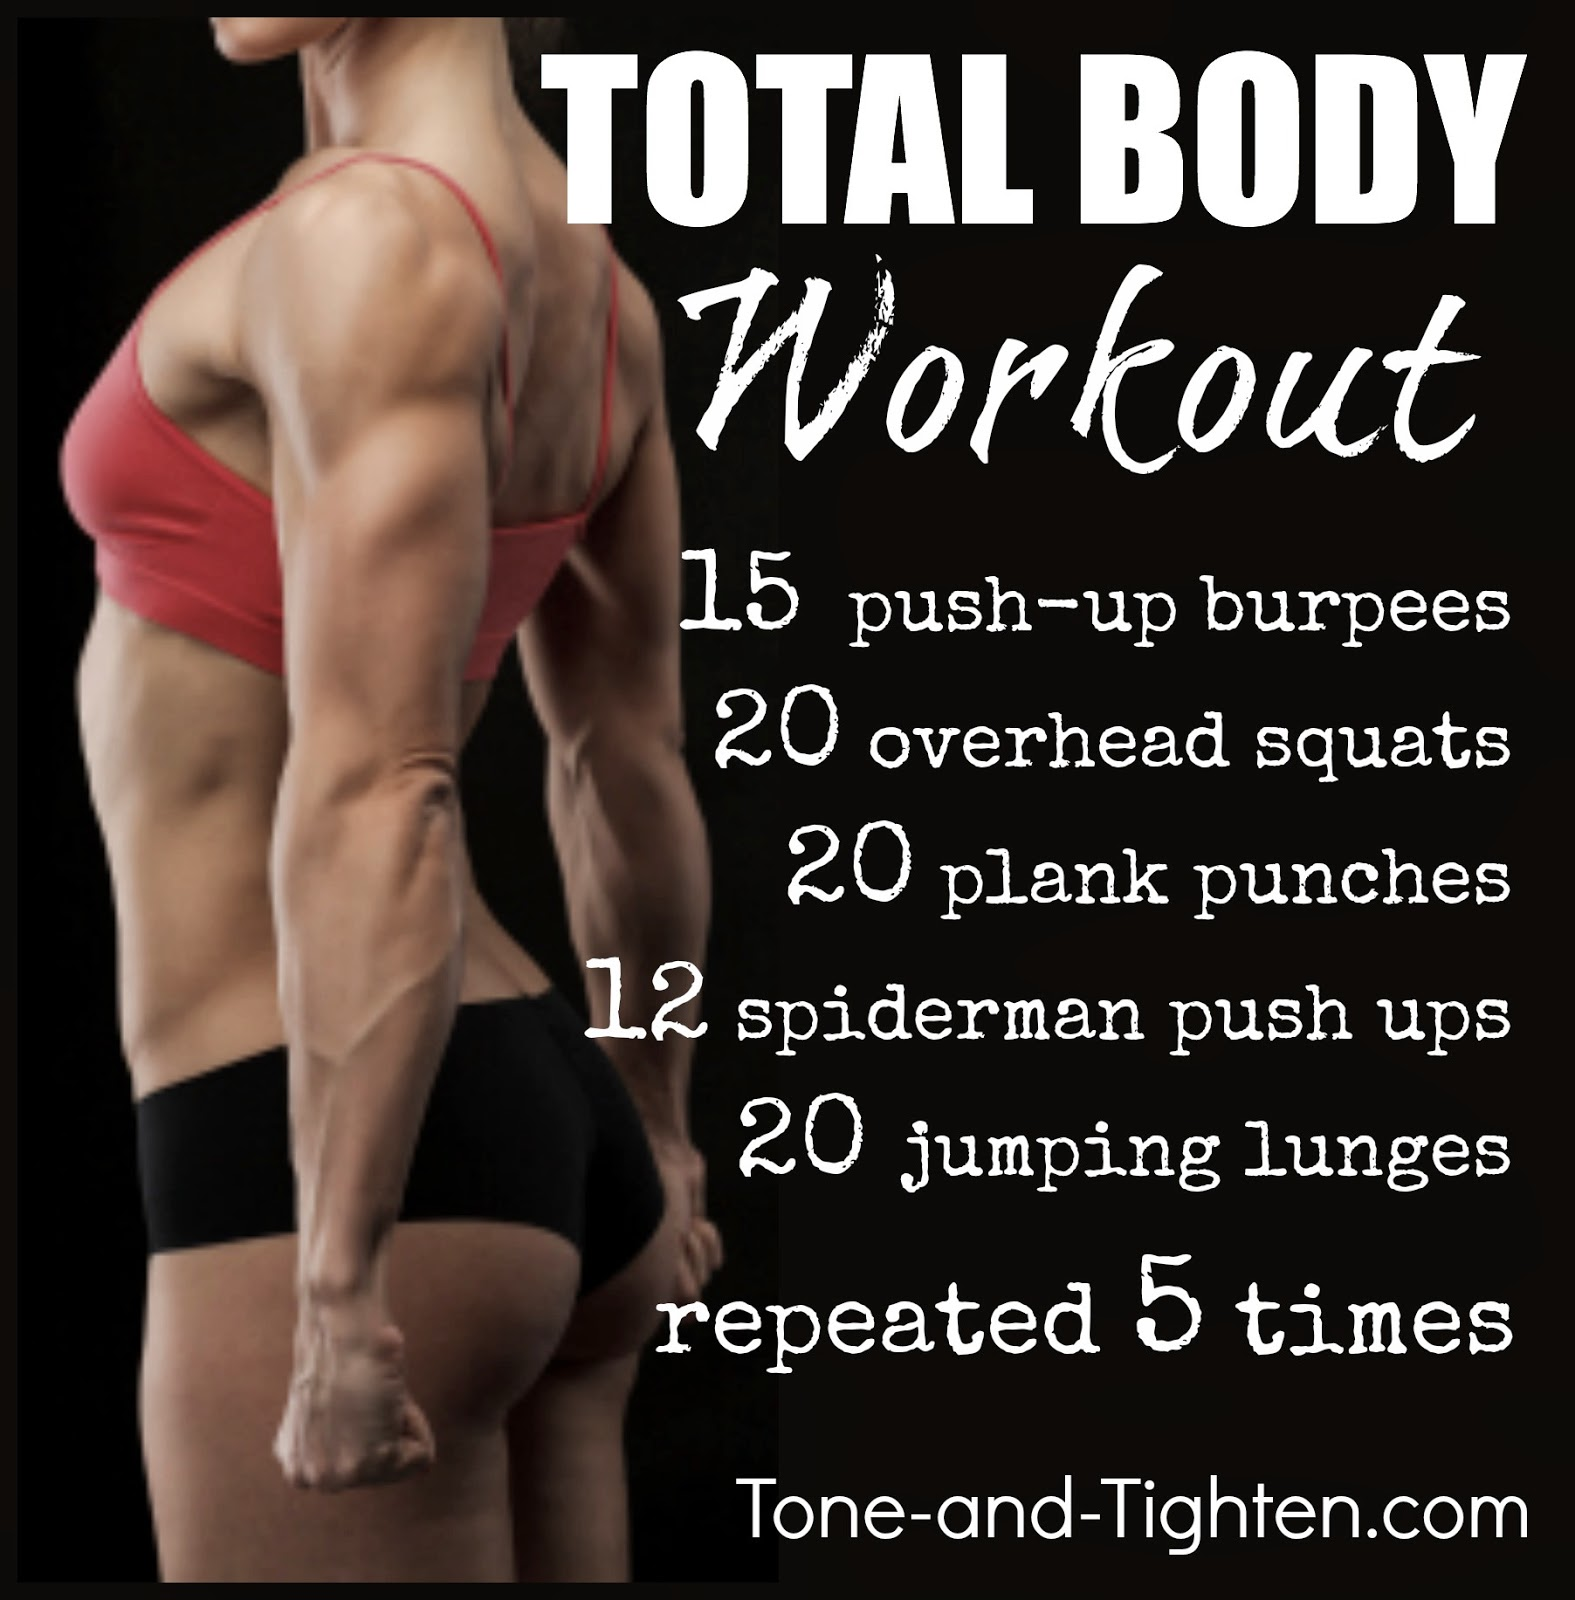 https://tone-and-tighten.com/2013/12/12-days-of-fitness-at-home-total-body-workout.html